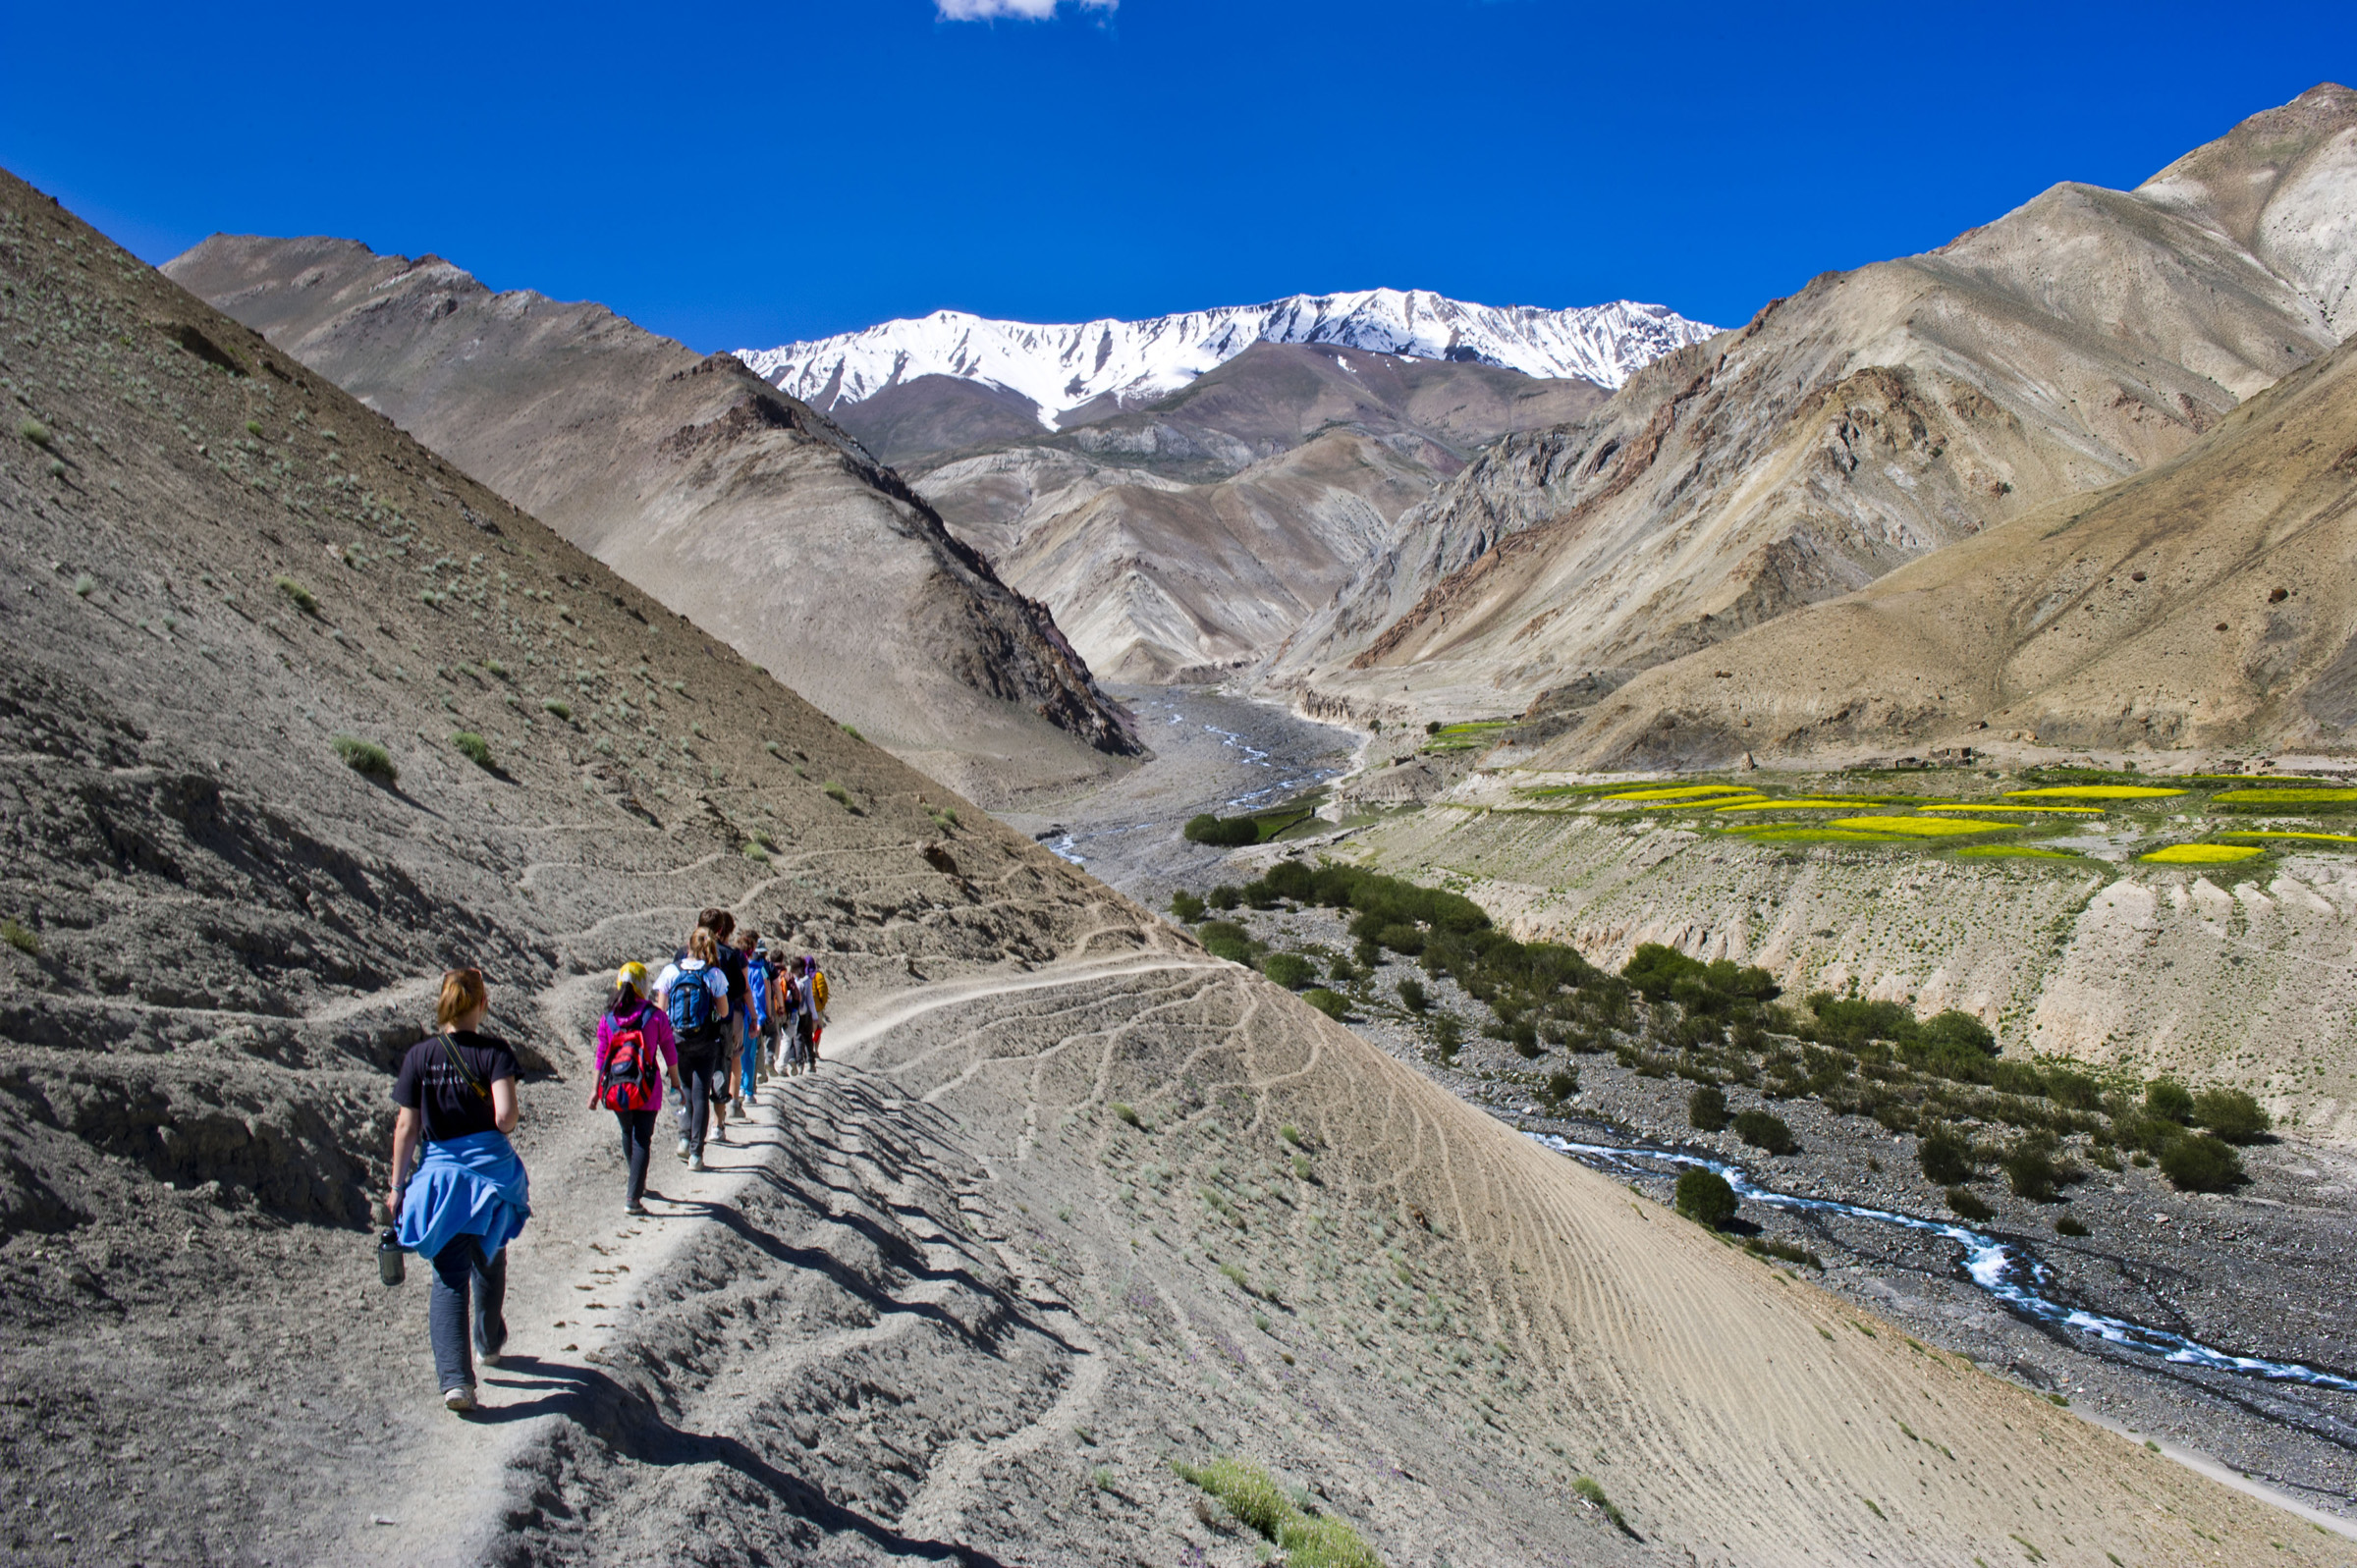 Source: Overland Ladakh